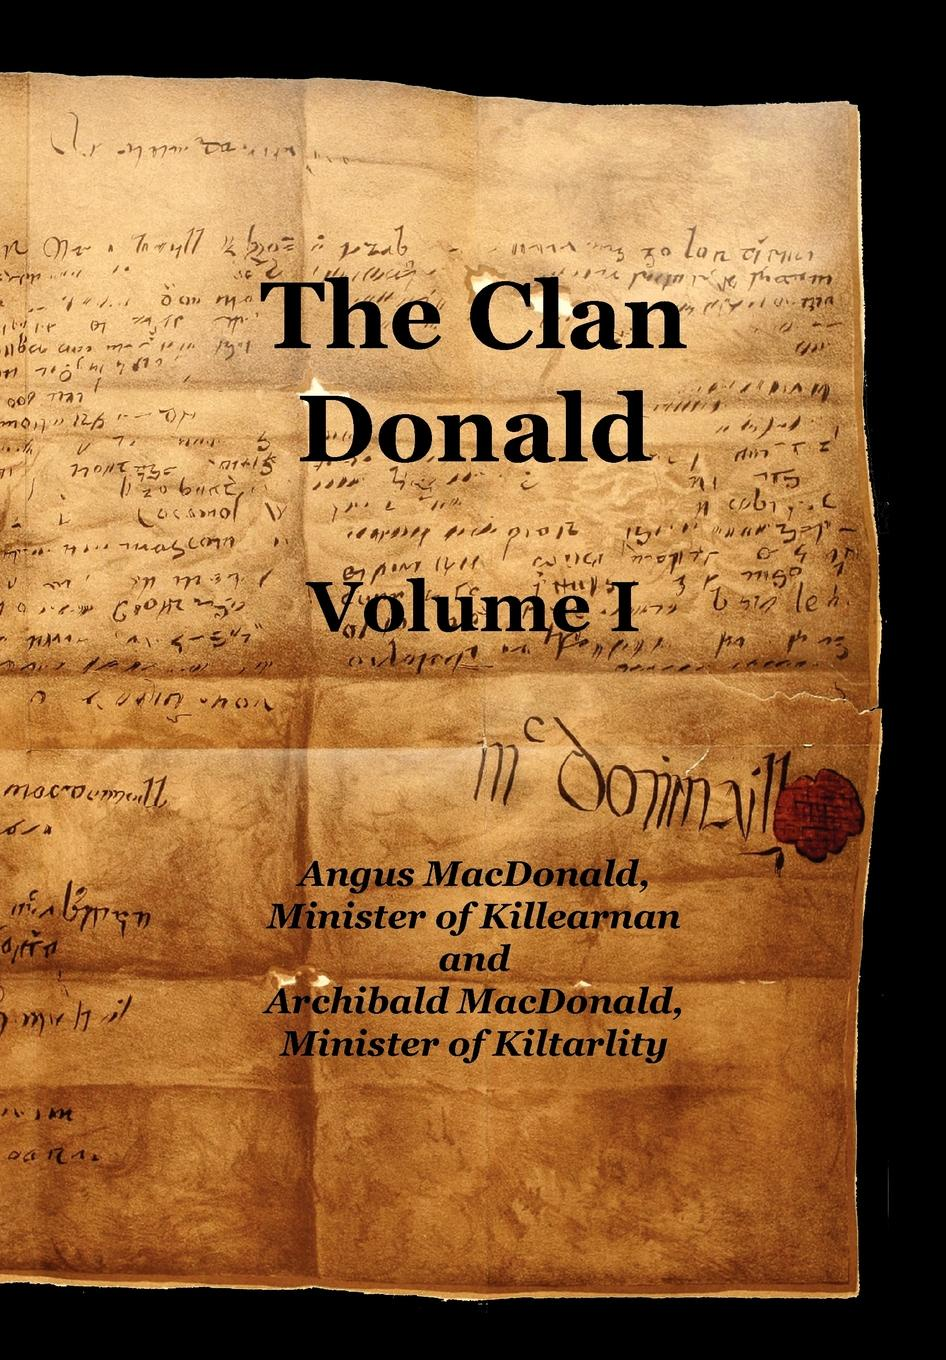 Angus Etc MacDonald, Archibald MacDonald The Clan Donald - Volume 1 g l shumway history of western nebraska and its people volume 3 part 1